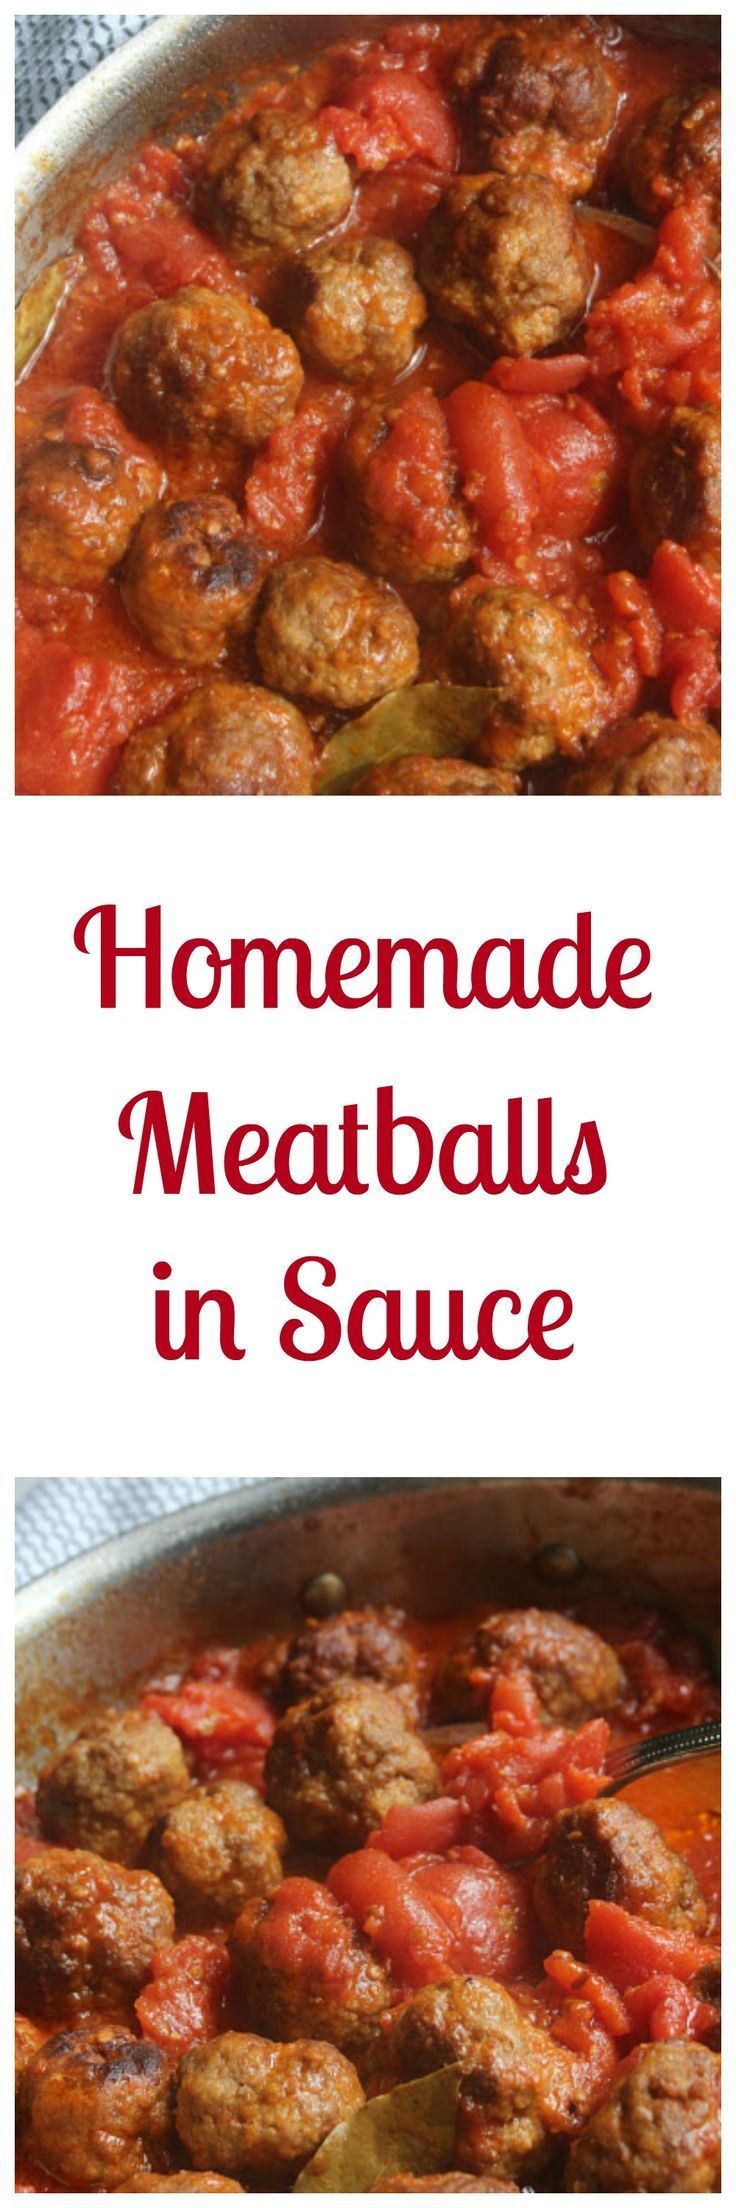 These yummy Homemade Meatballs in Sauce are fun of flavor and make dinnertime a snap! Ready in less than an hour, what makes these meatballs a great dinnertime solution is the fact that you can prep everything the morning of (or even the night before!) an